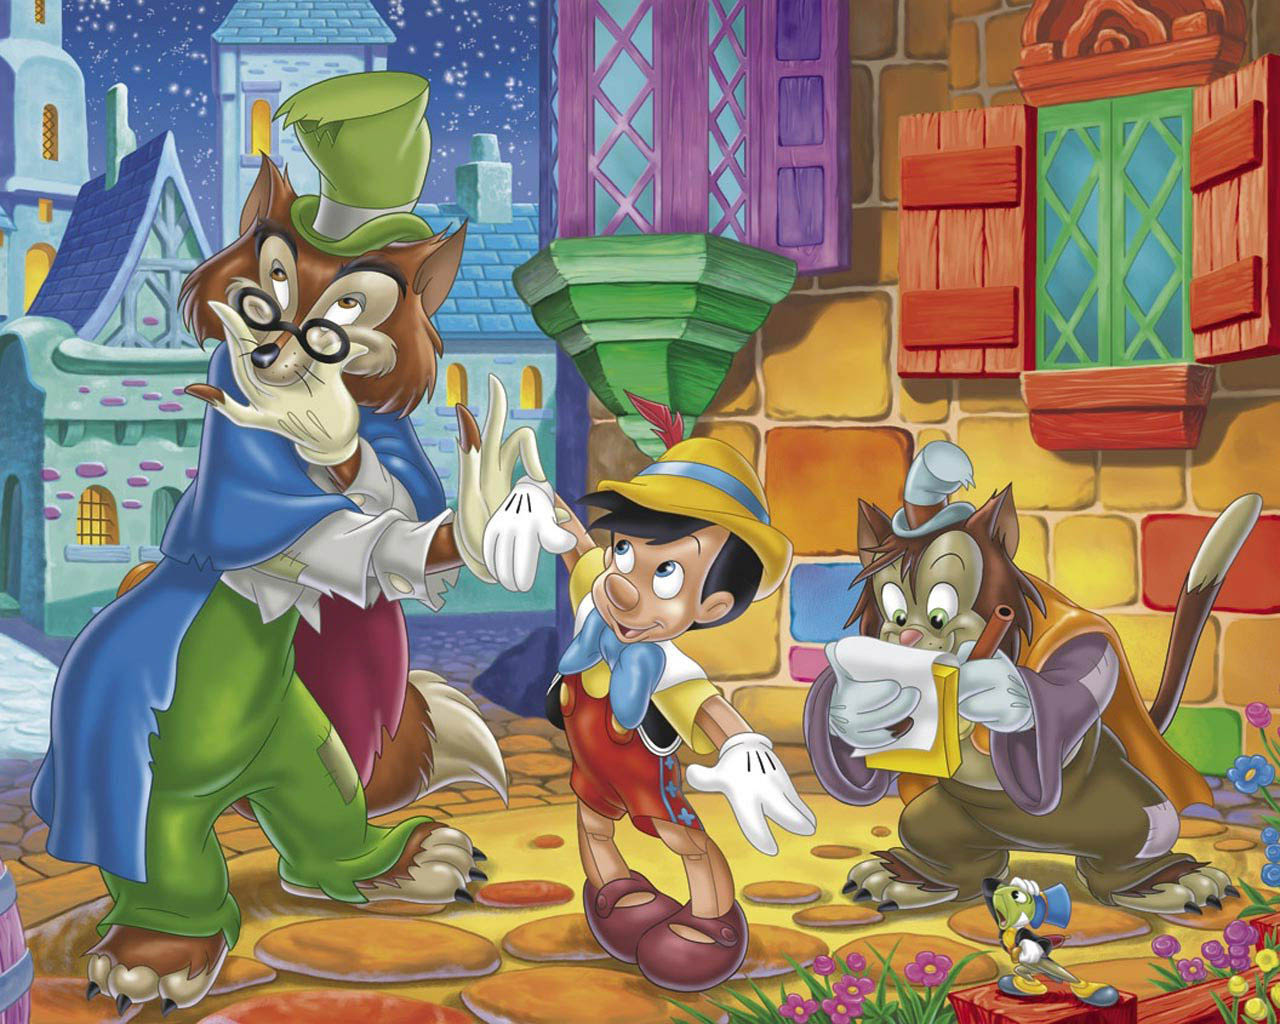 Pinocchio High Defination Wallpapers Backgrounds All Hd